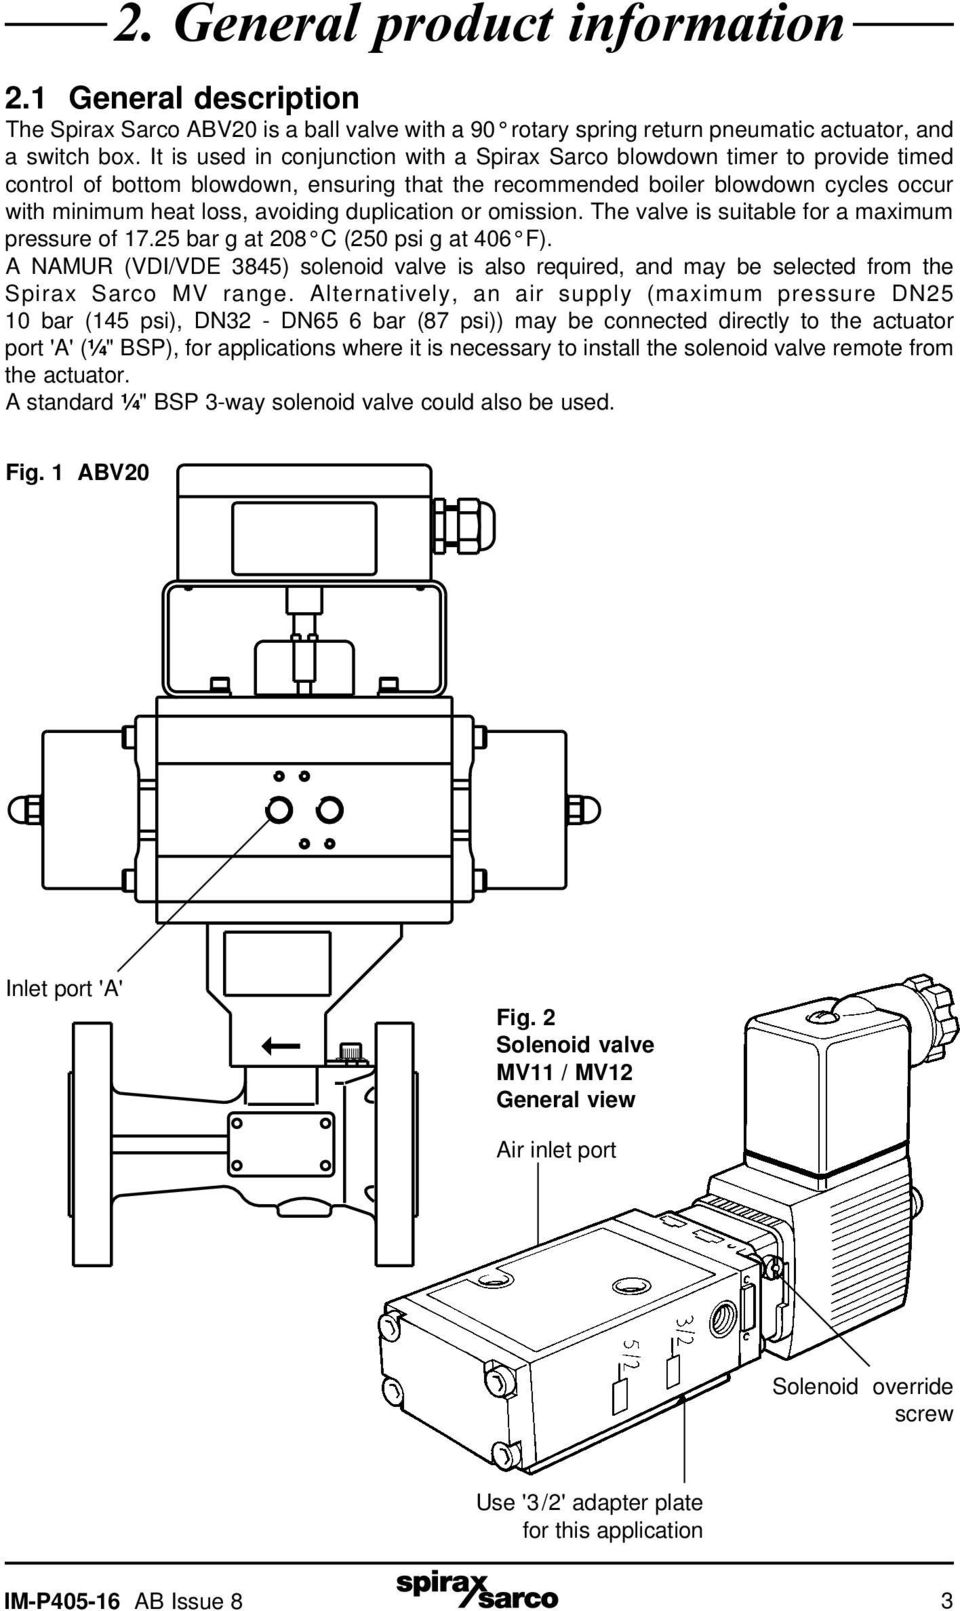 duplication or omission. The valve is suitable for a maximum pressure of 17.25 bar g at 208 C (250 psi g at 406 F).